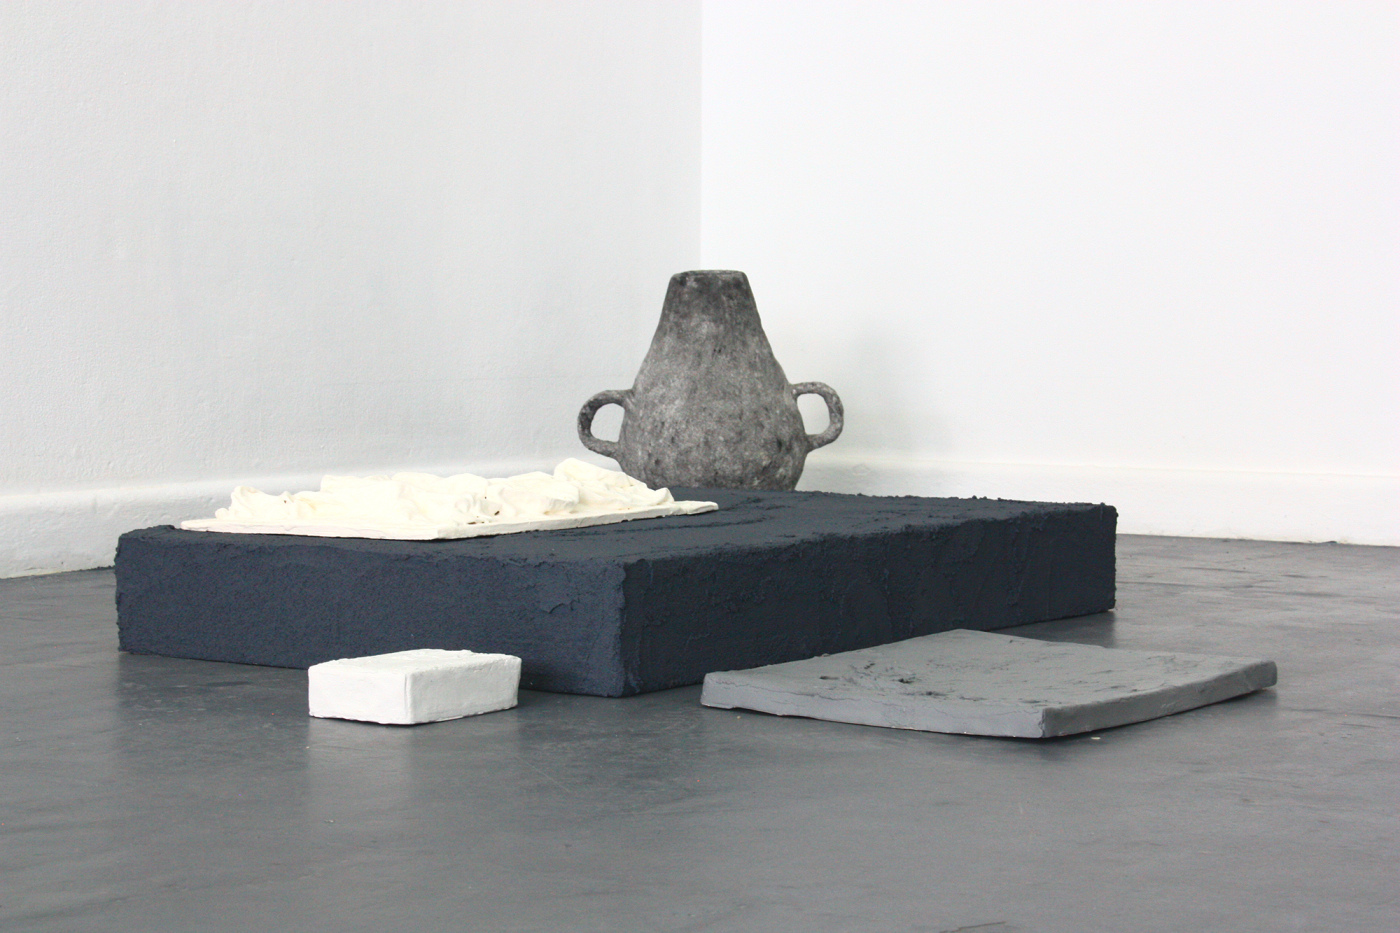 13-blindside-reinventing-the-medium-white-and-grey-pieces-m-thornton-smith.jpg